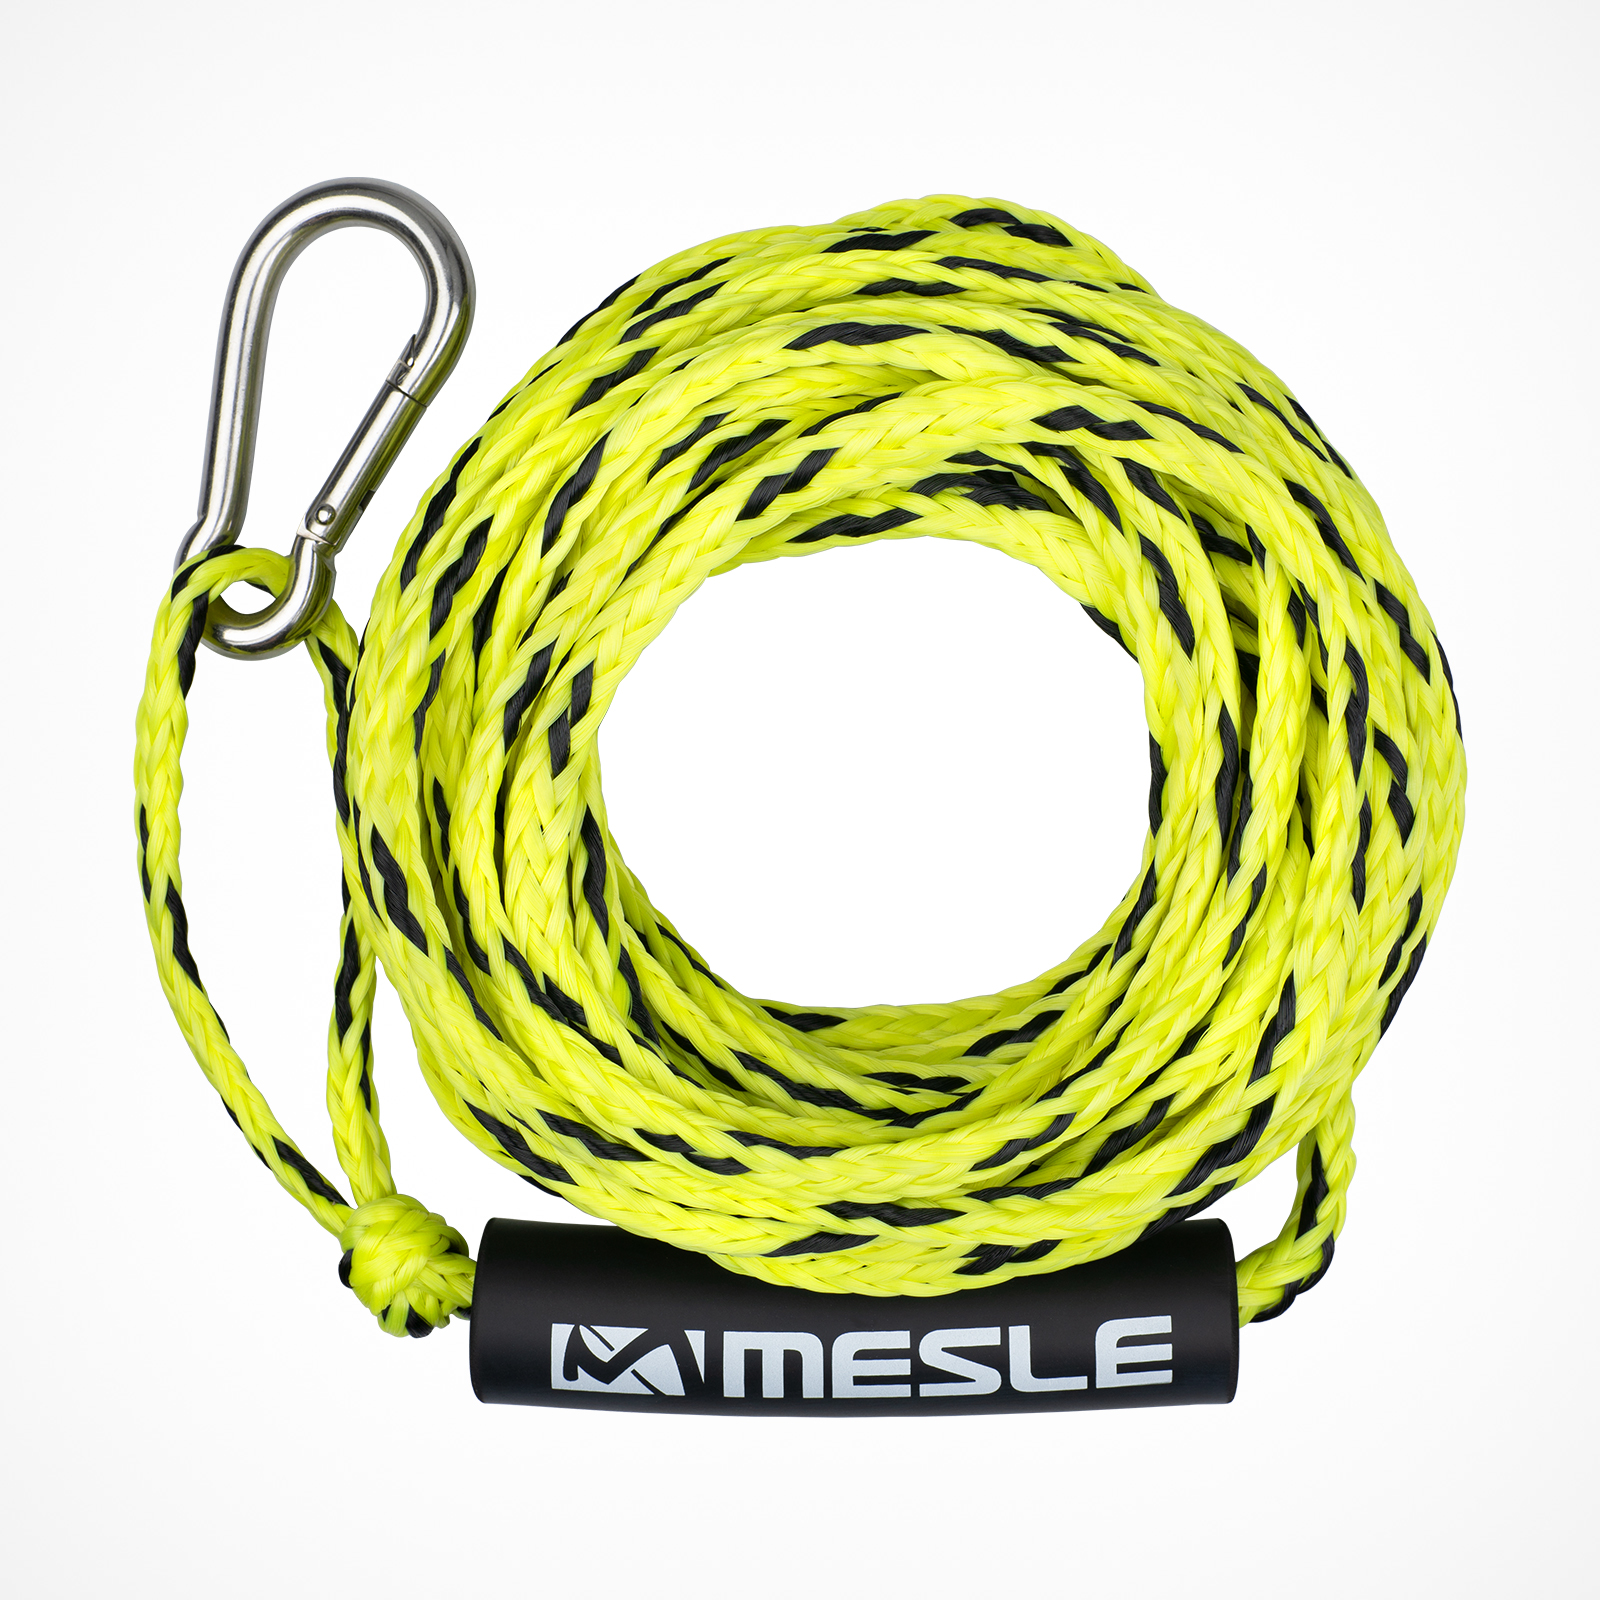 MESLE Tow Rope for 2 persons in yellow, 50' for Water Sports Tubes, floating and with Carabiner